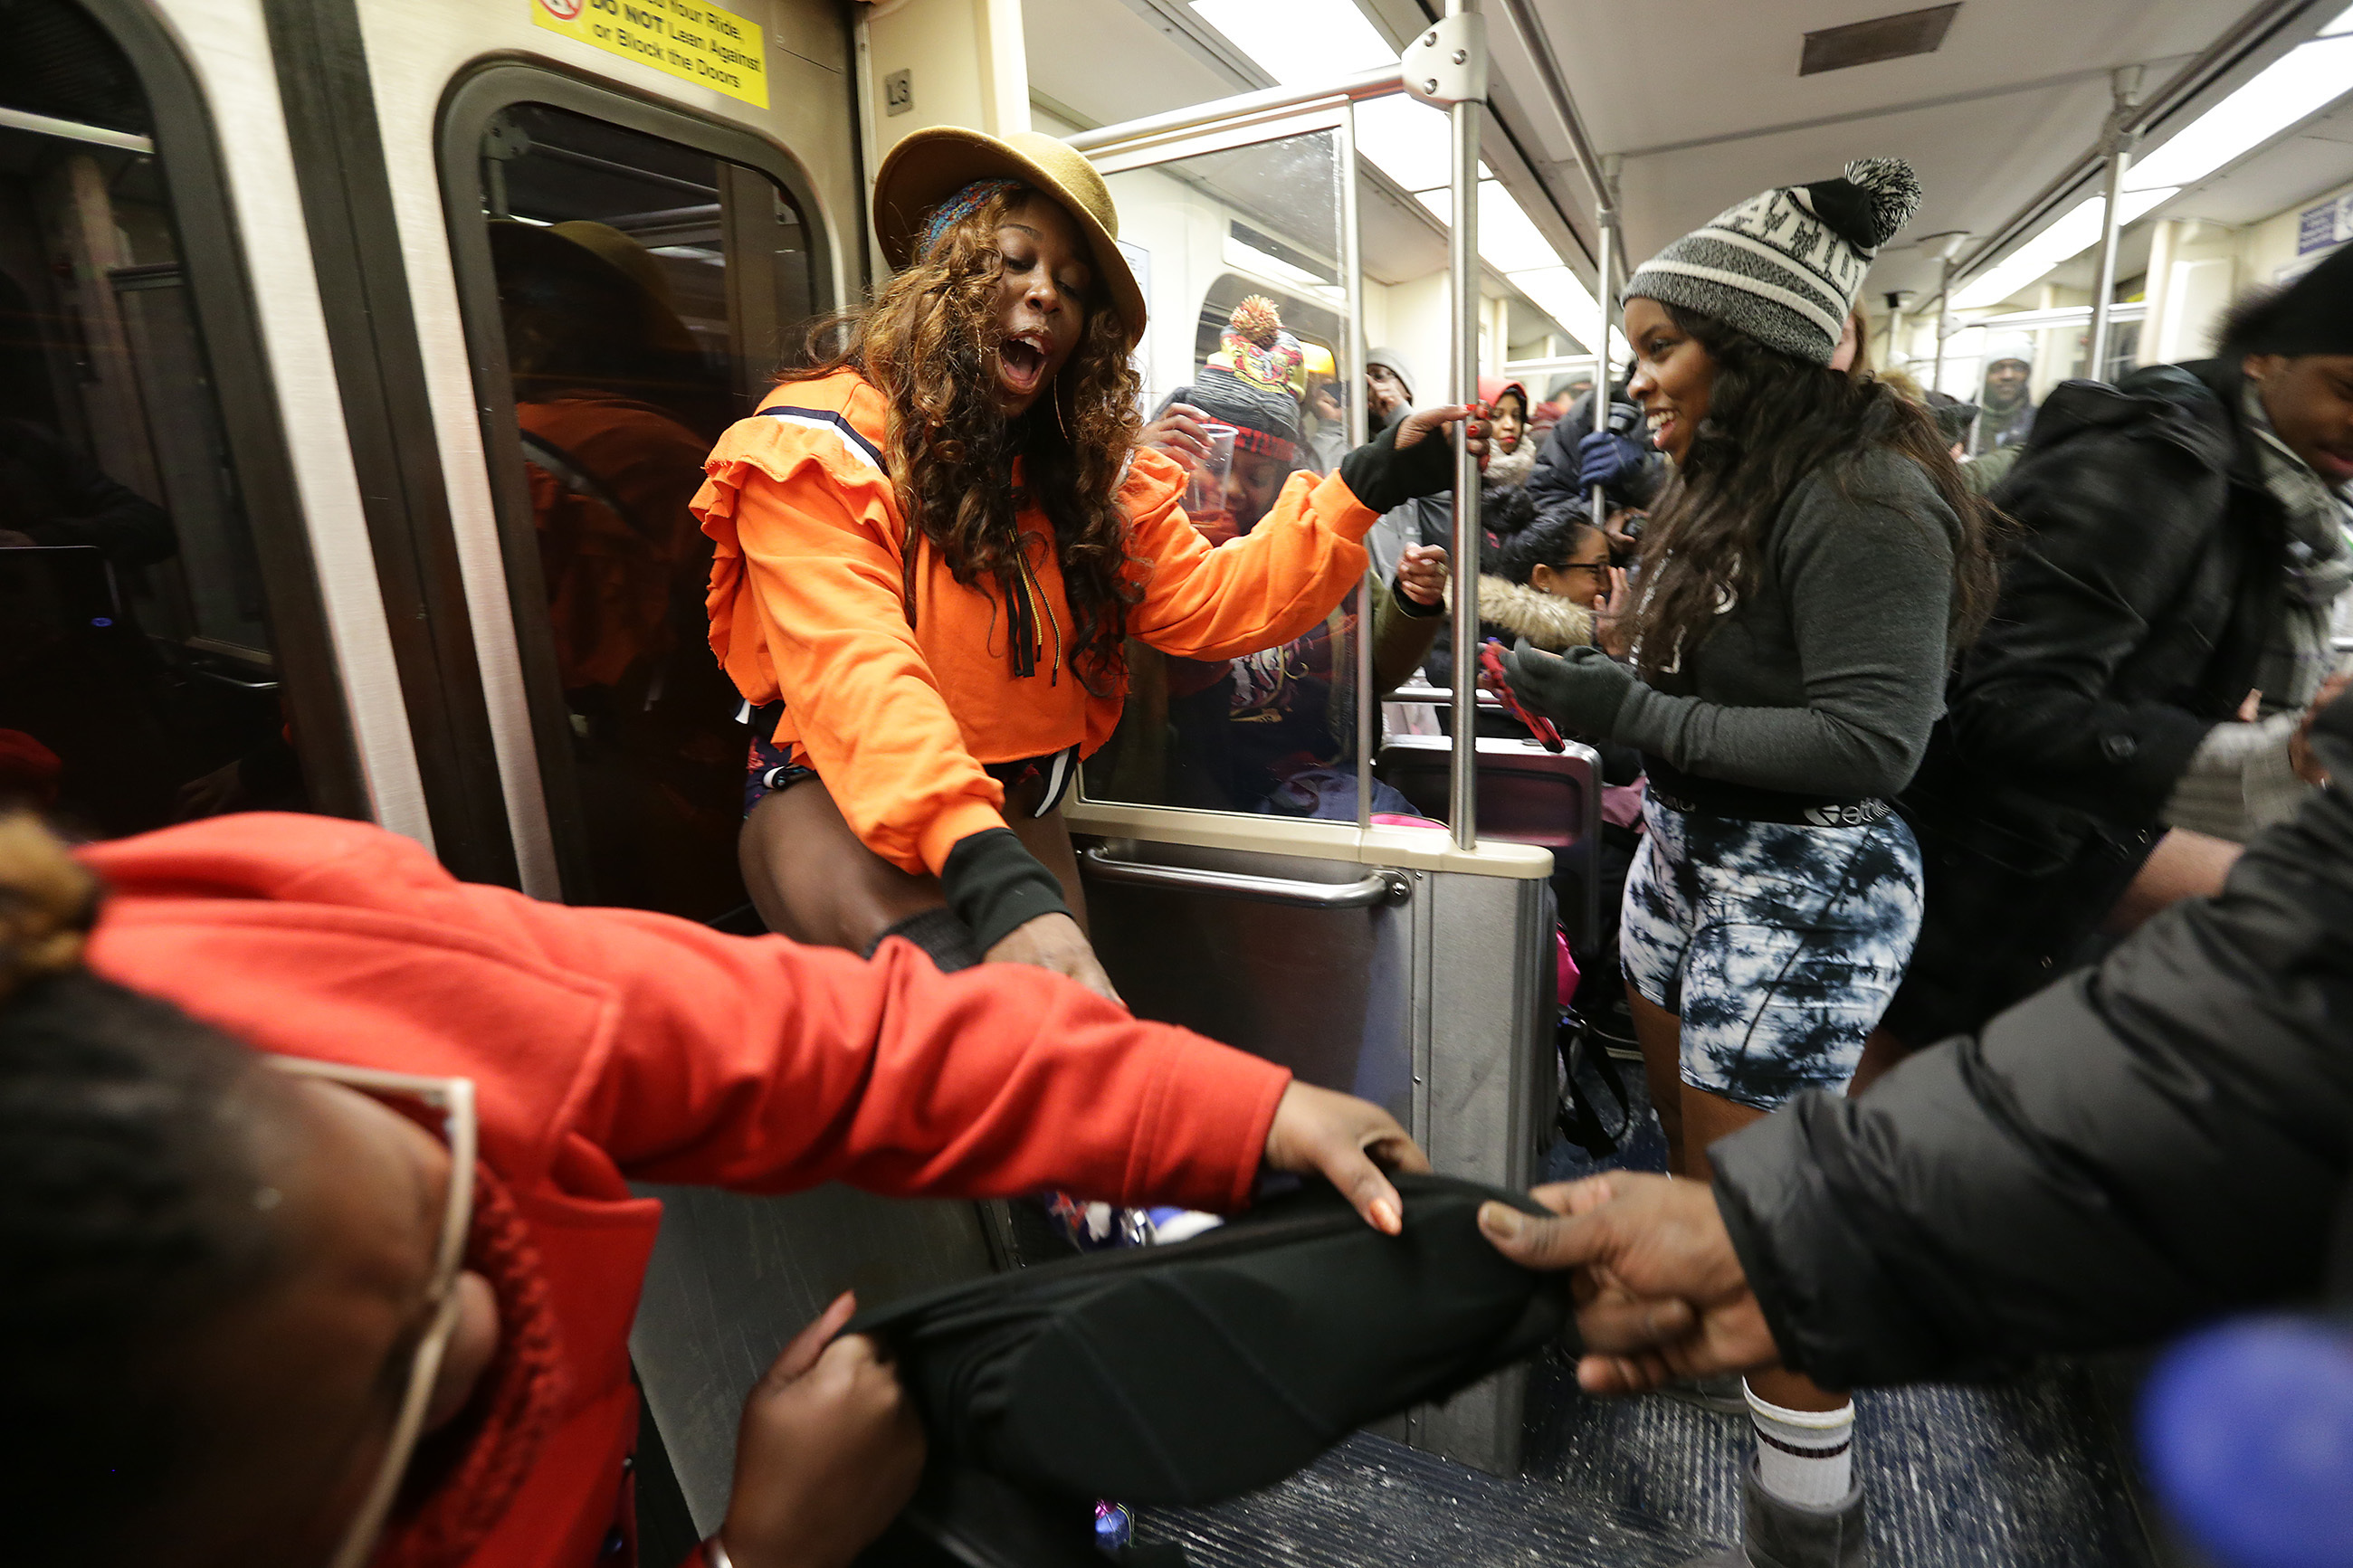 India White, center, gets help undressing during the No Pants Subway Ride in Philadelphia, PA on January 7, 2018.